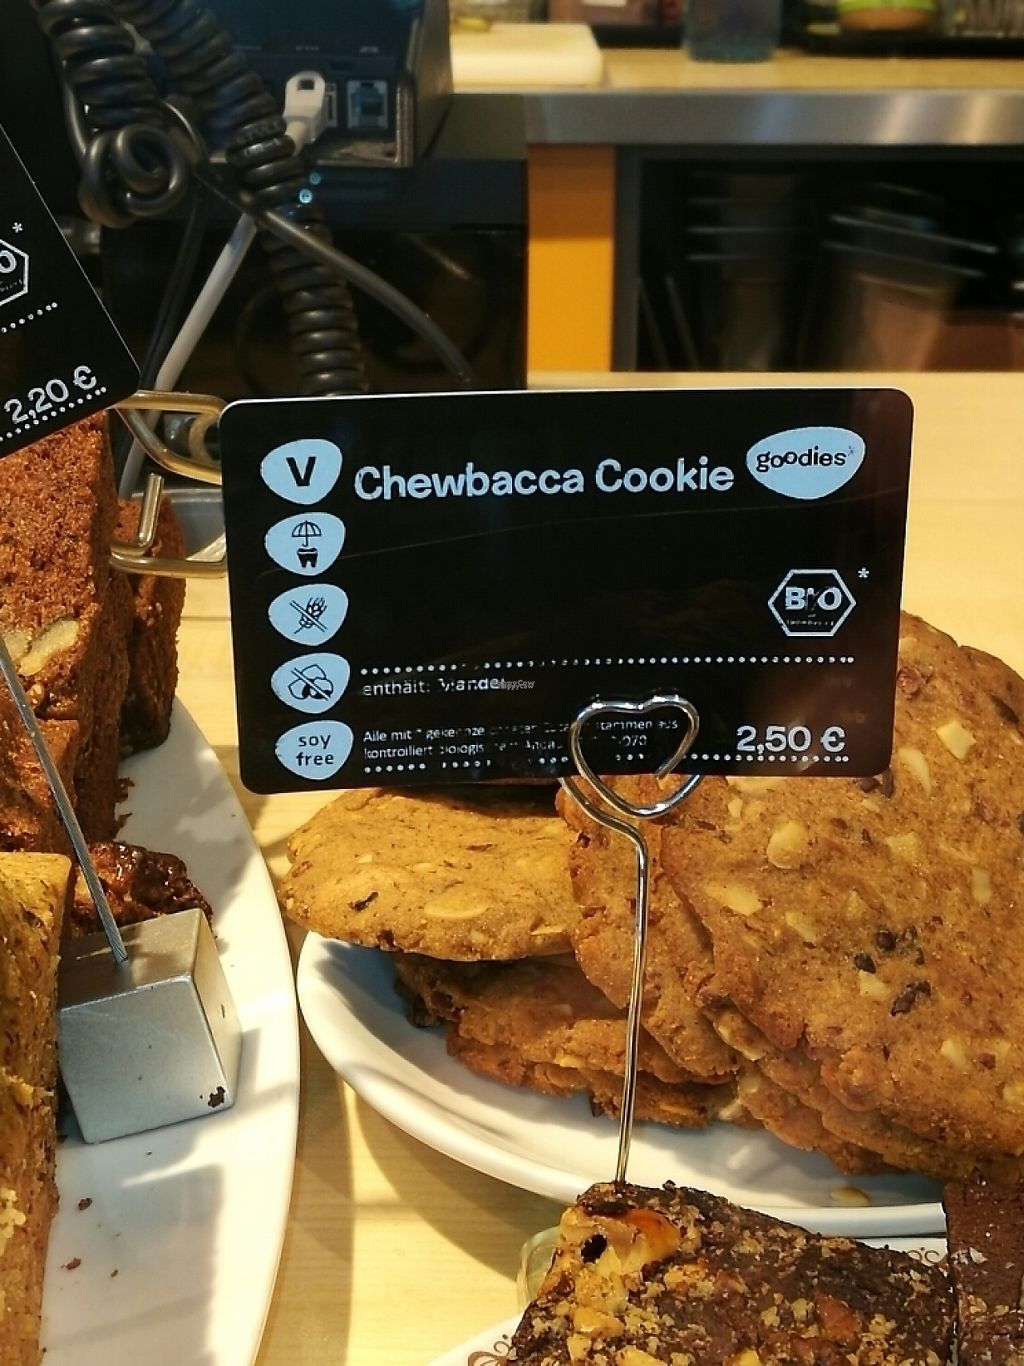 """Photo of Goodies Cafe - Veganz Schivelbeiner Str  by <a href=""""/members/profile/Waldyvgun"""">Waldyvgun</a> <br/>chewbacca! <br/> March 9, 2017  - <a href='/contact/abuse/image/27316/234638'>Report</a>"""